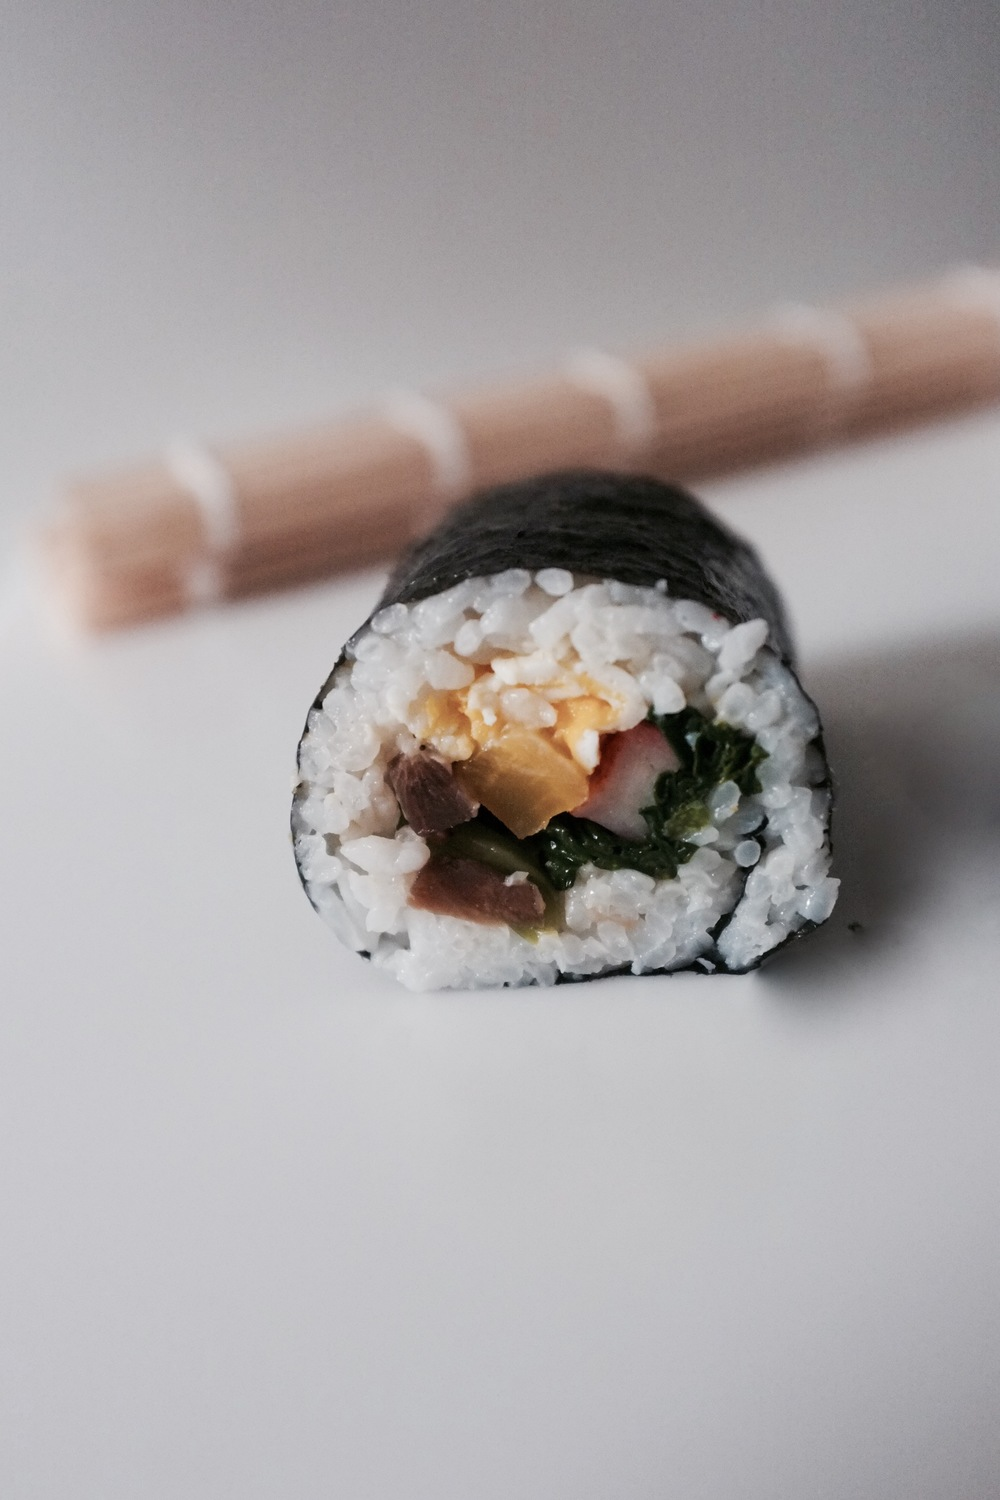 Kimbap (Korean Lunch Rolls) - Hill Reeves